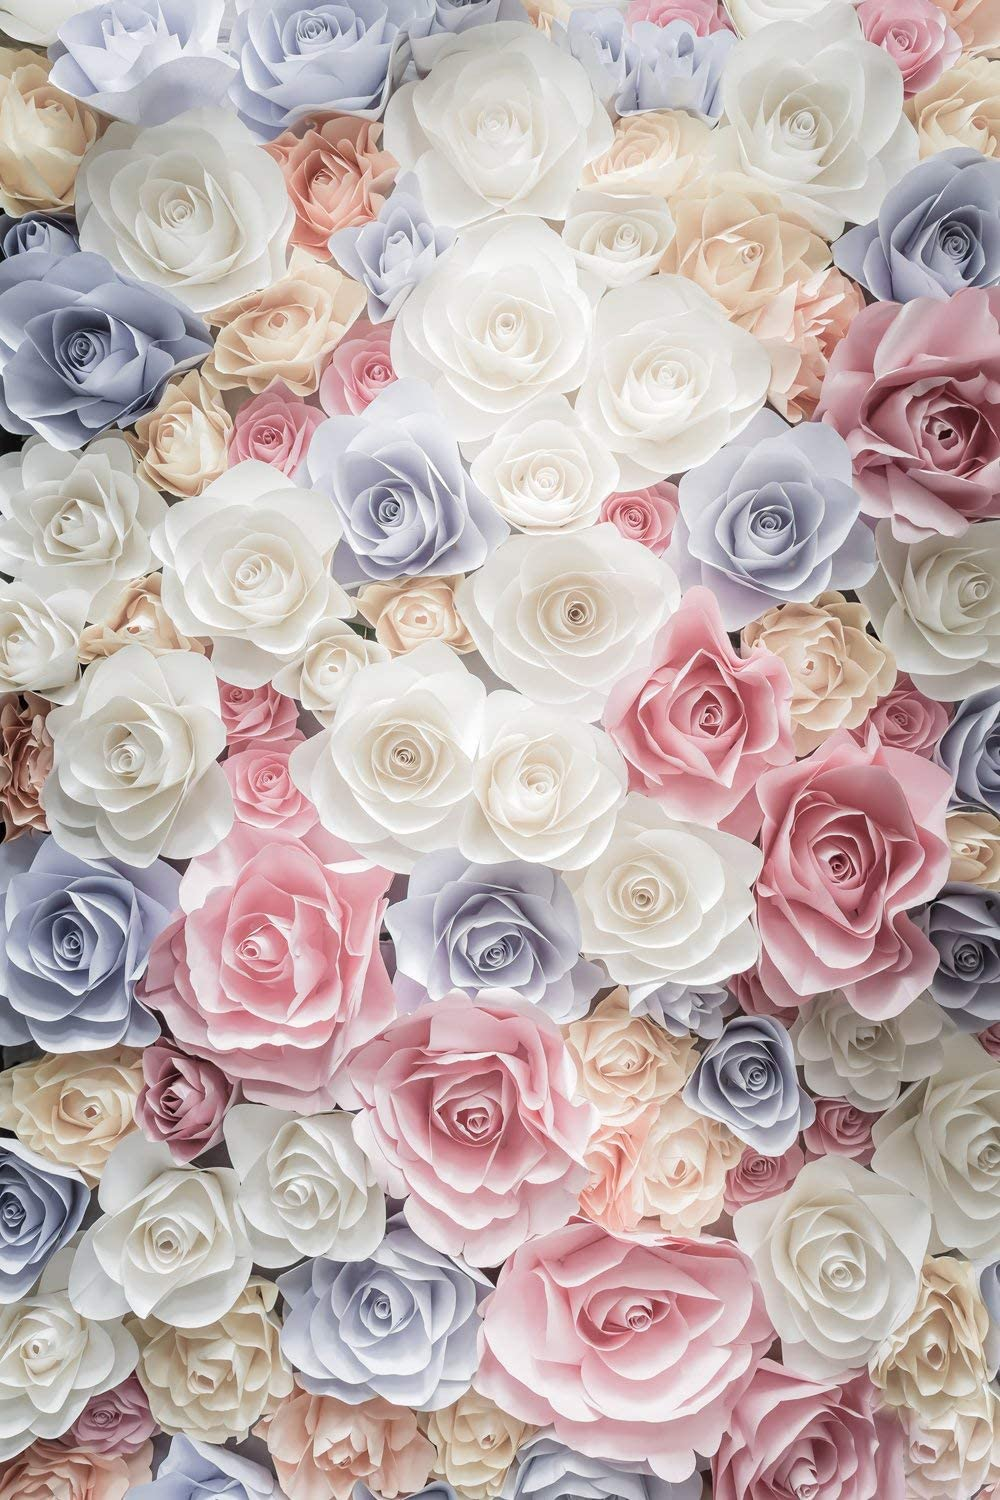 CdHBH 6x9ft Valentines Day background pink white flower wall childrens birthday photo background cloth festival venue party layout photo studio photo photography background wallpaper home decoration